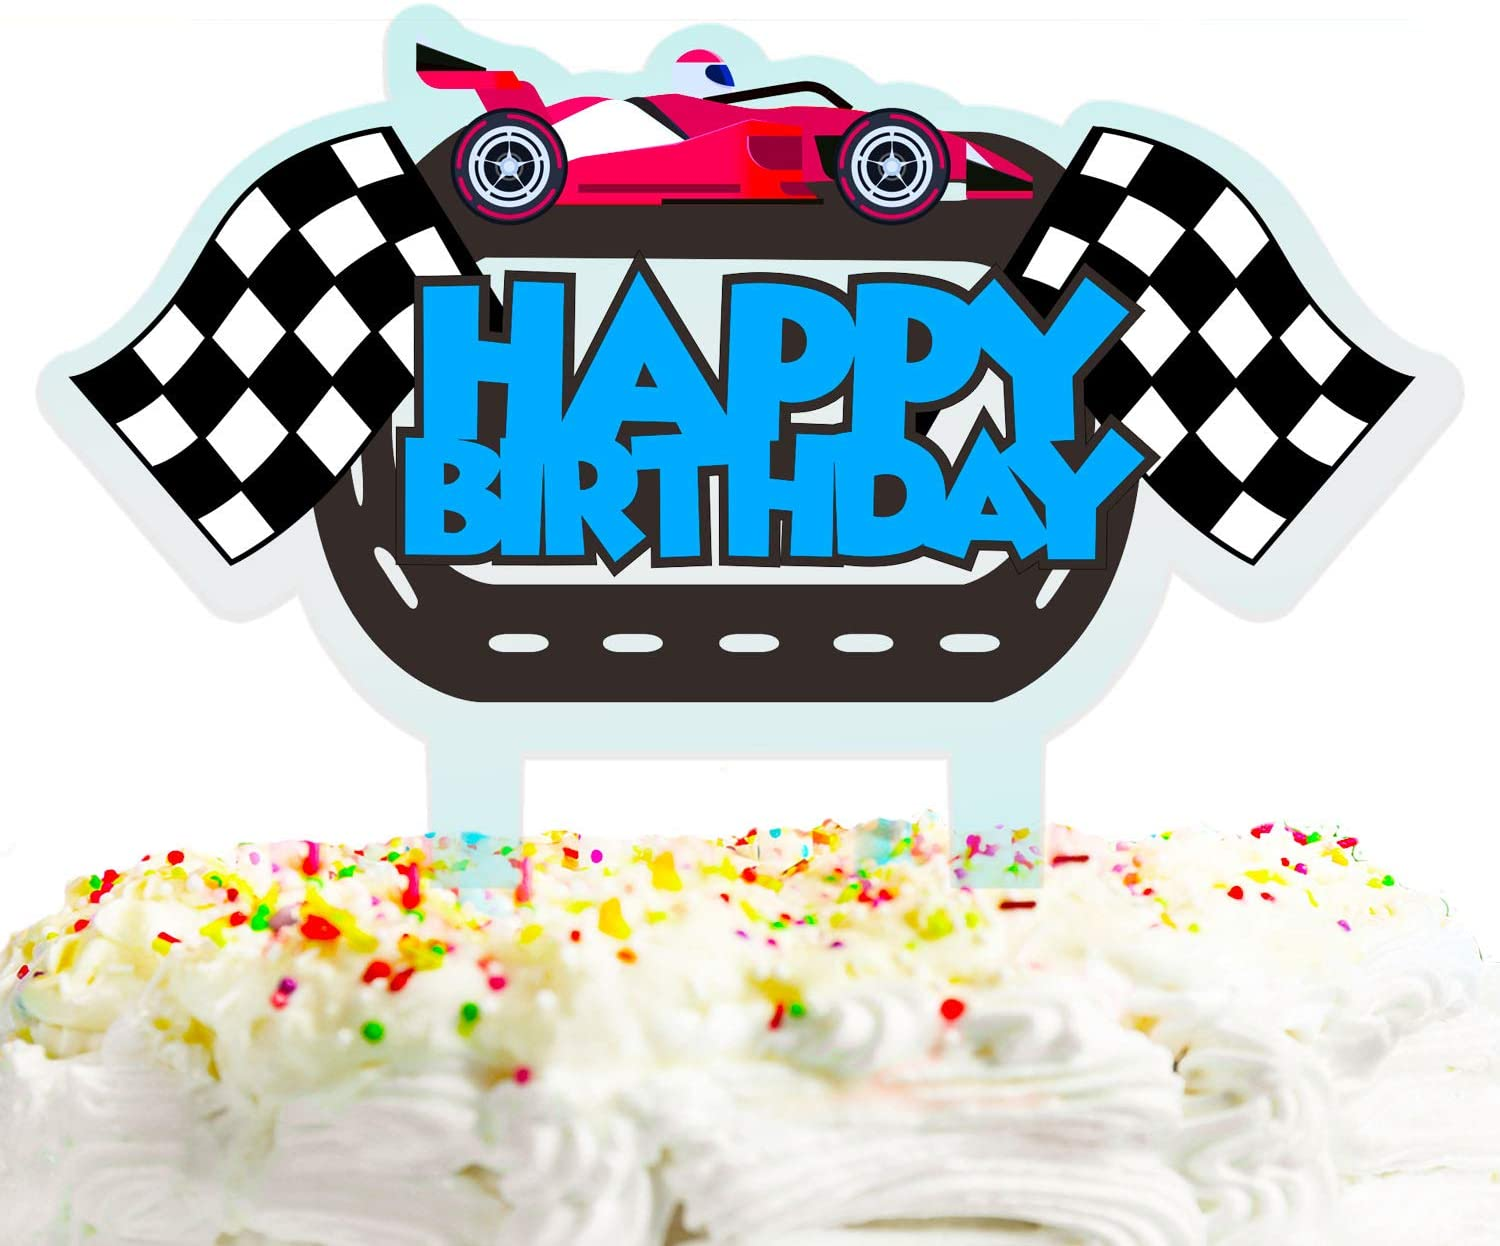 Racing Car Happy Birthday Cake Topper Decorations with Kids for F1 Car Theme Picks for Racing Birthday Party Decor Supplies